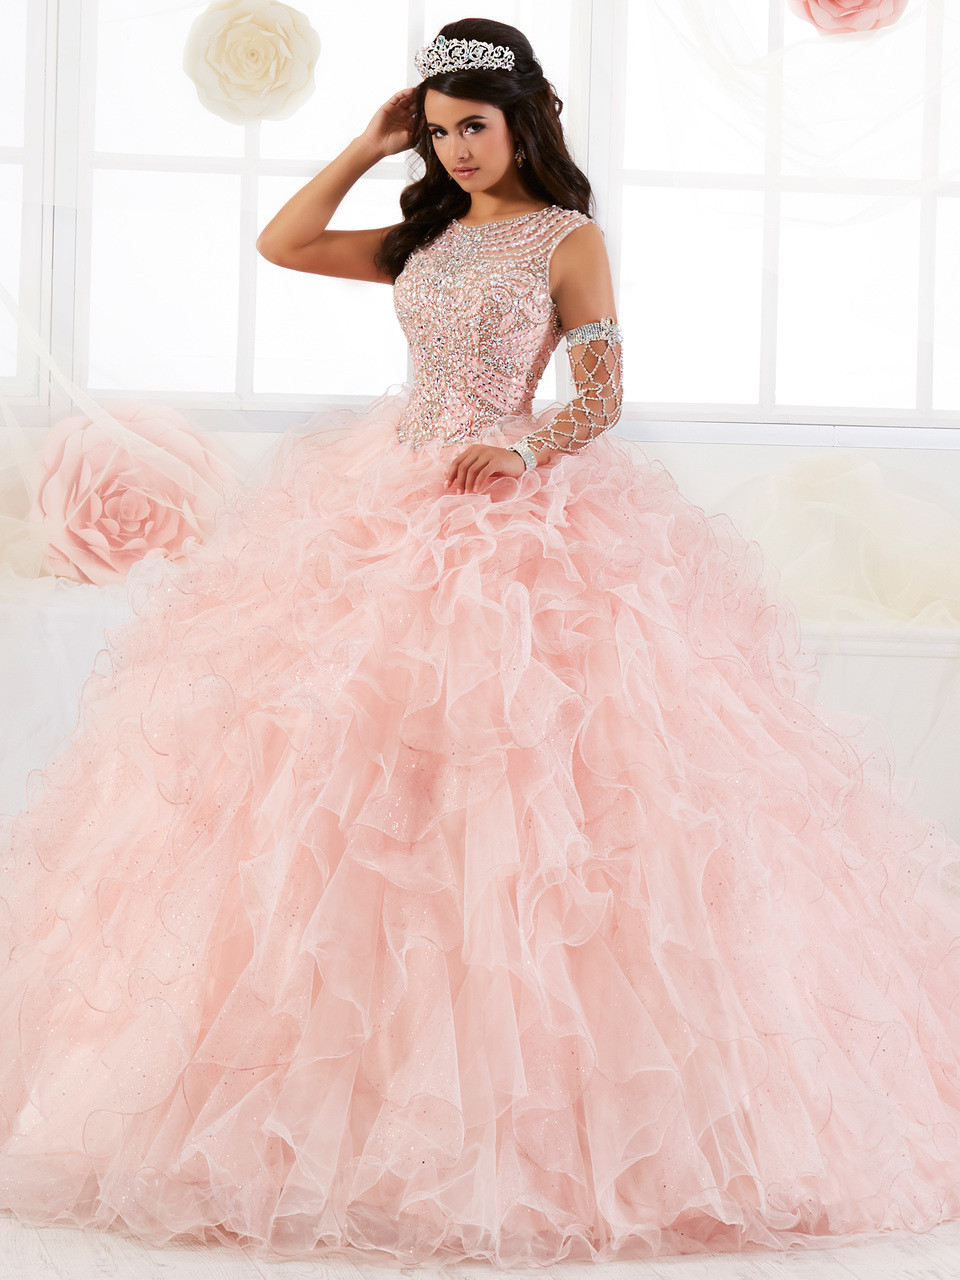 c4be7804b01 Quinceanera Collection Ruffled Ball Gown Dress 26901 ...